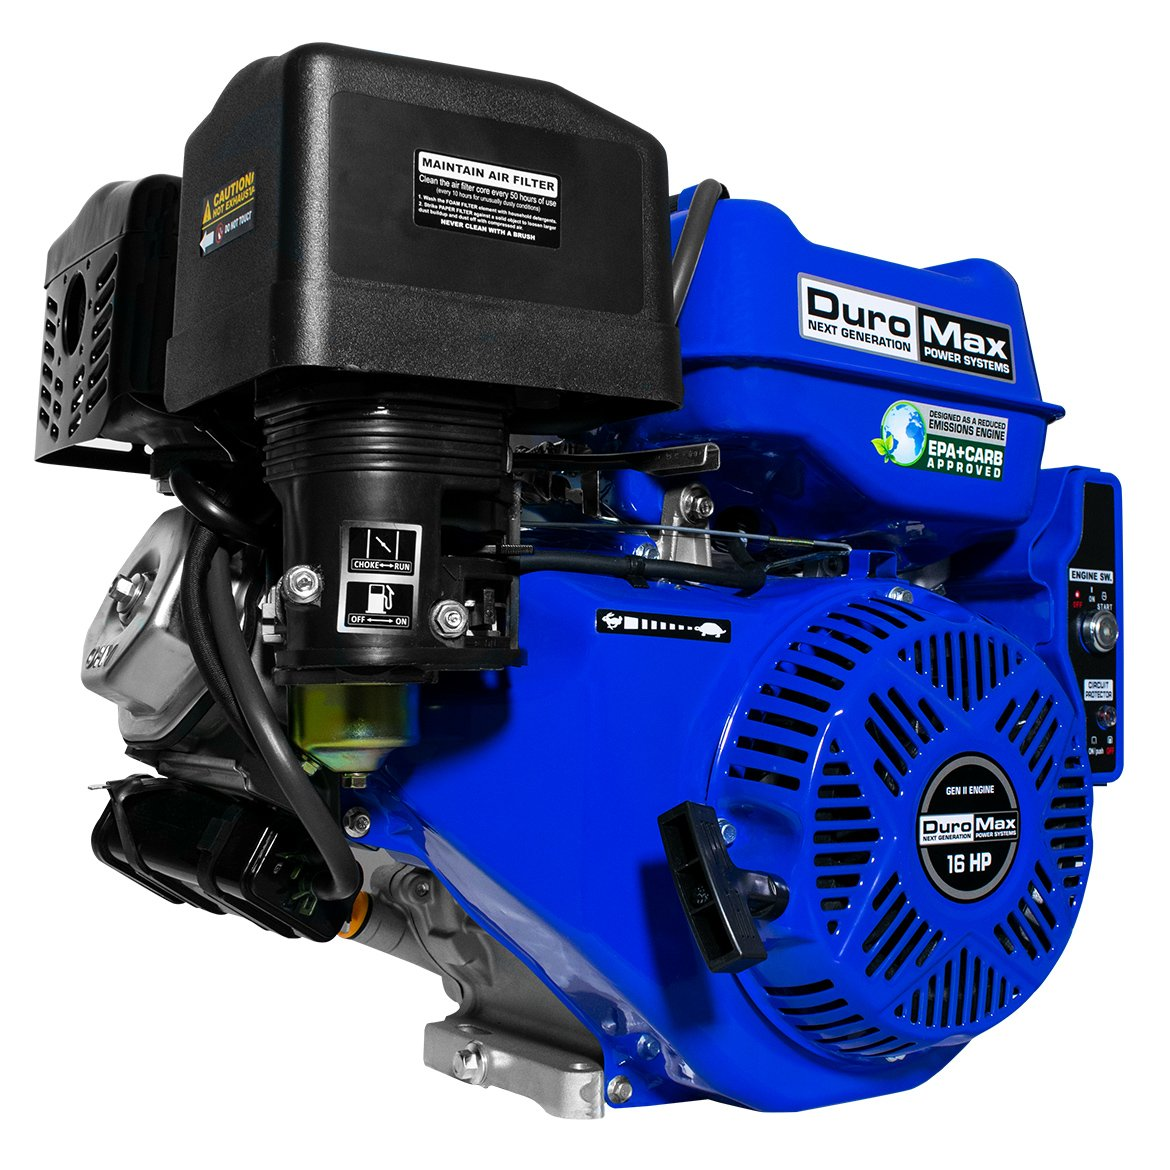 Amazon.com : DuroMax XP16HPE 16 hp Electric/Recoil Start Engine : Two  Stroke Power Tool Engines : Garden & Outdoor